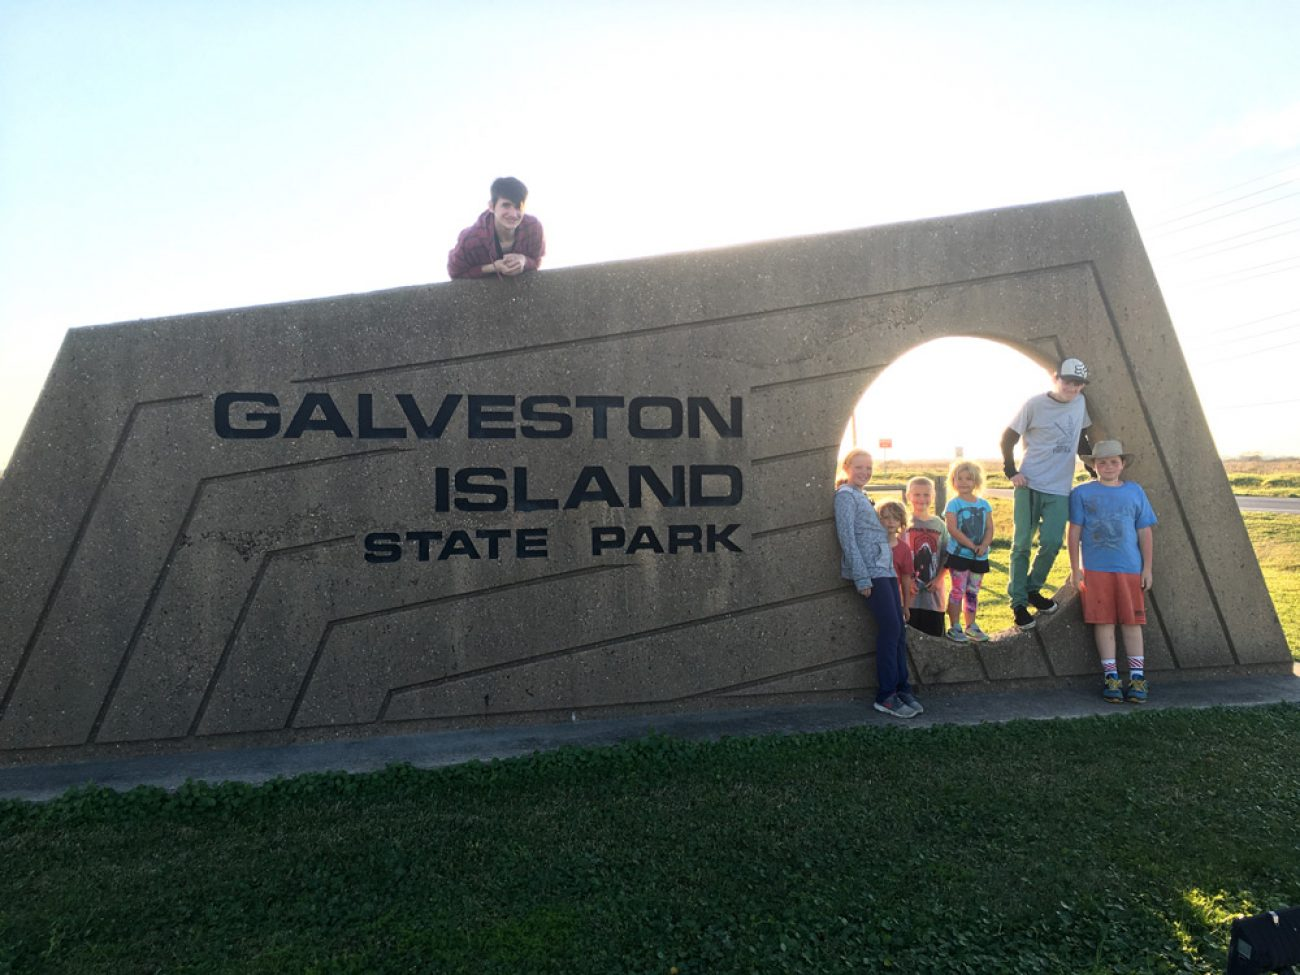 Galveston Island Sign